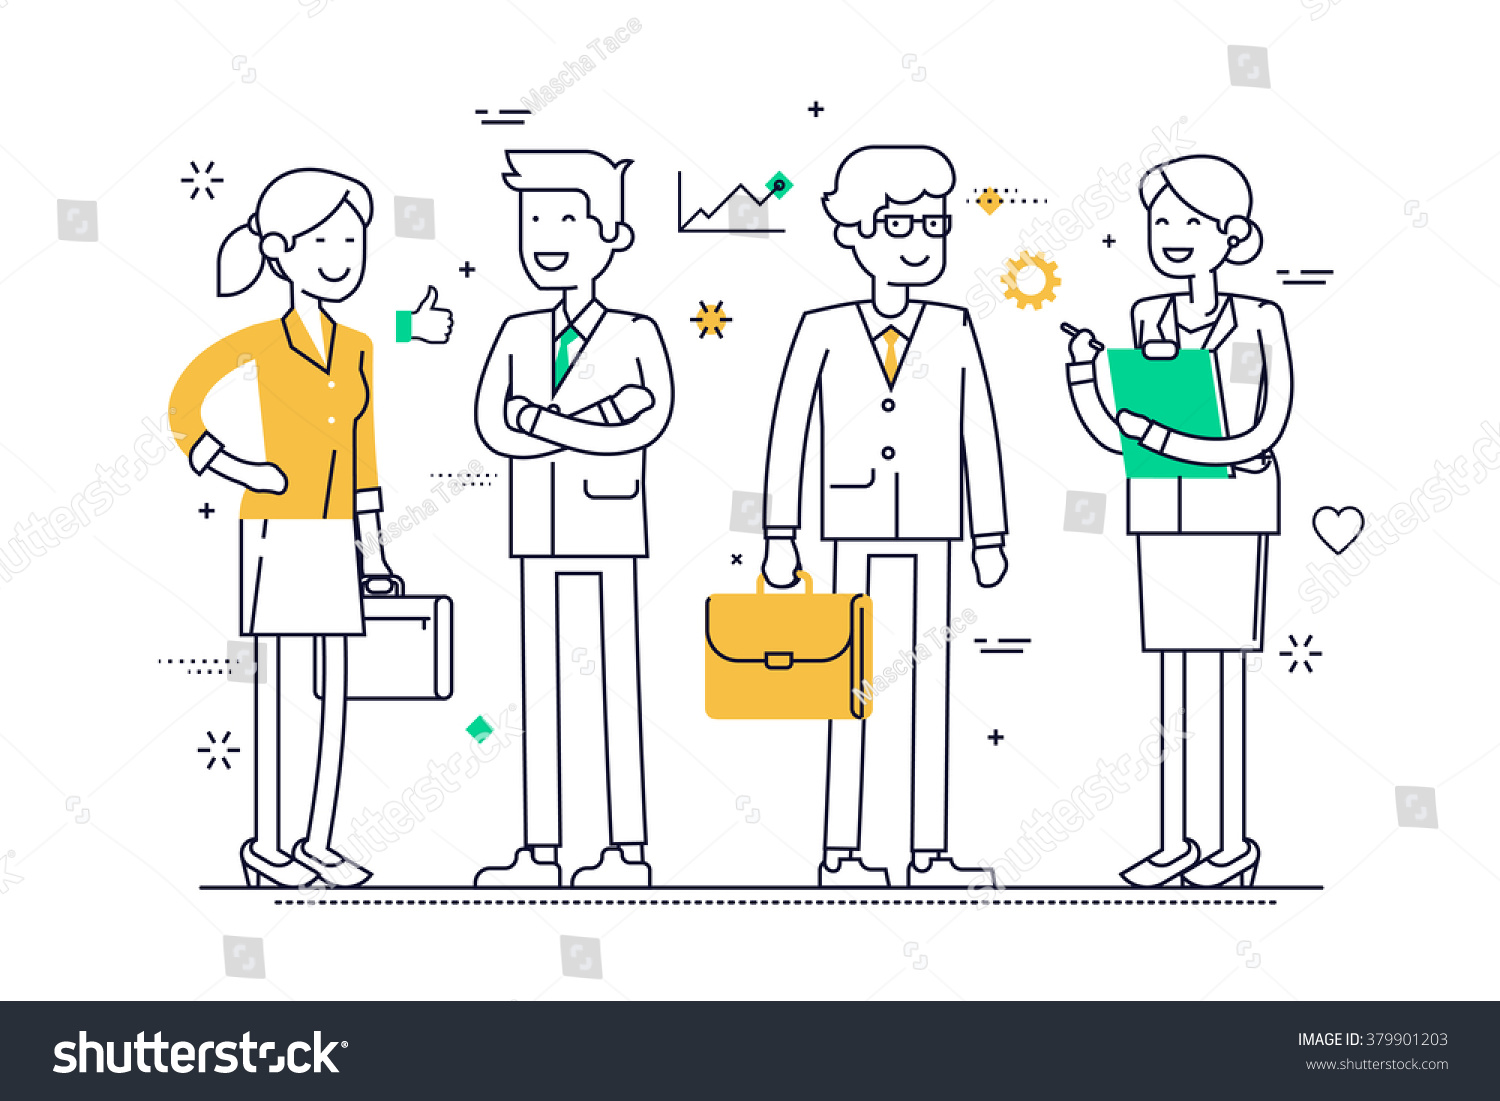 Character Design Job Opportunities : Linear group office workers standing smiling stock vector